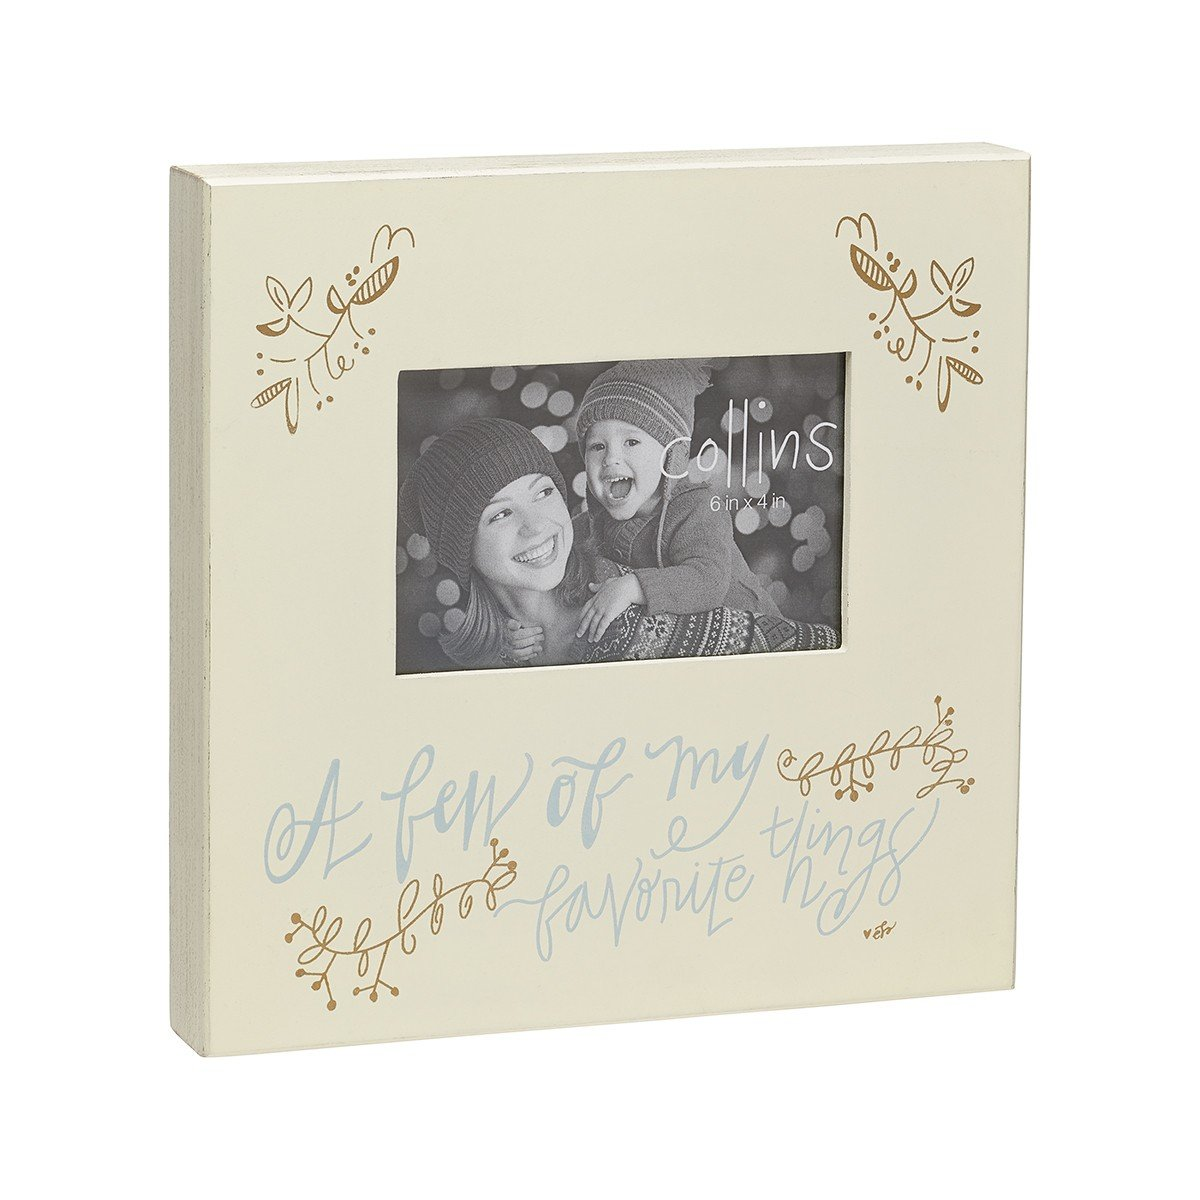 Collins A Few of My Favorite Things Wood Box Picture Frame, 10 x 10 Inch Collins Painting & Design